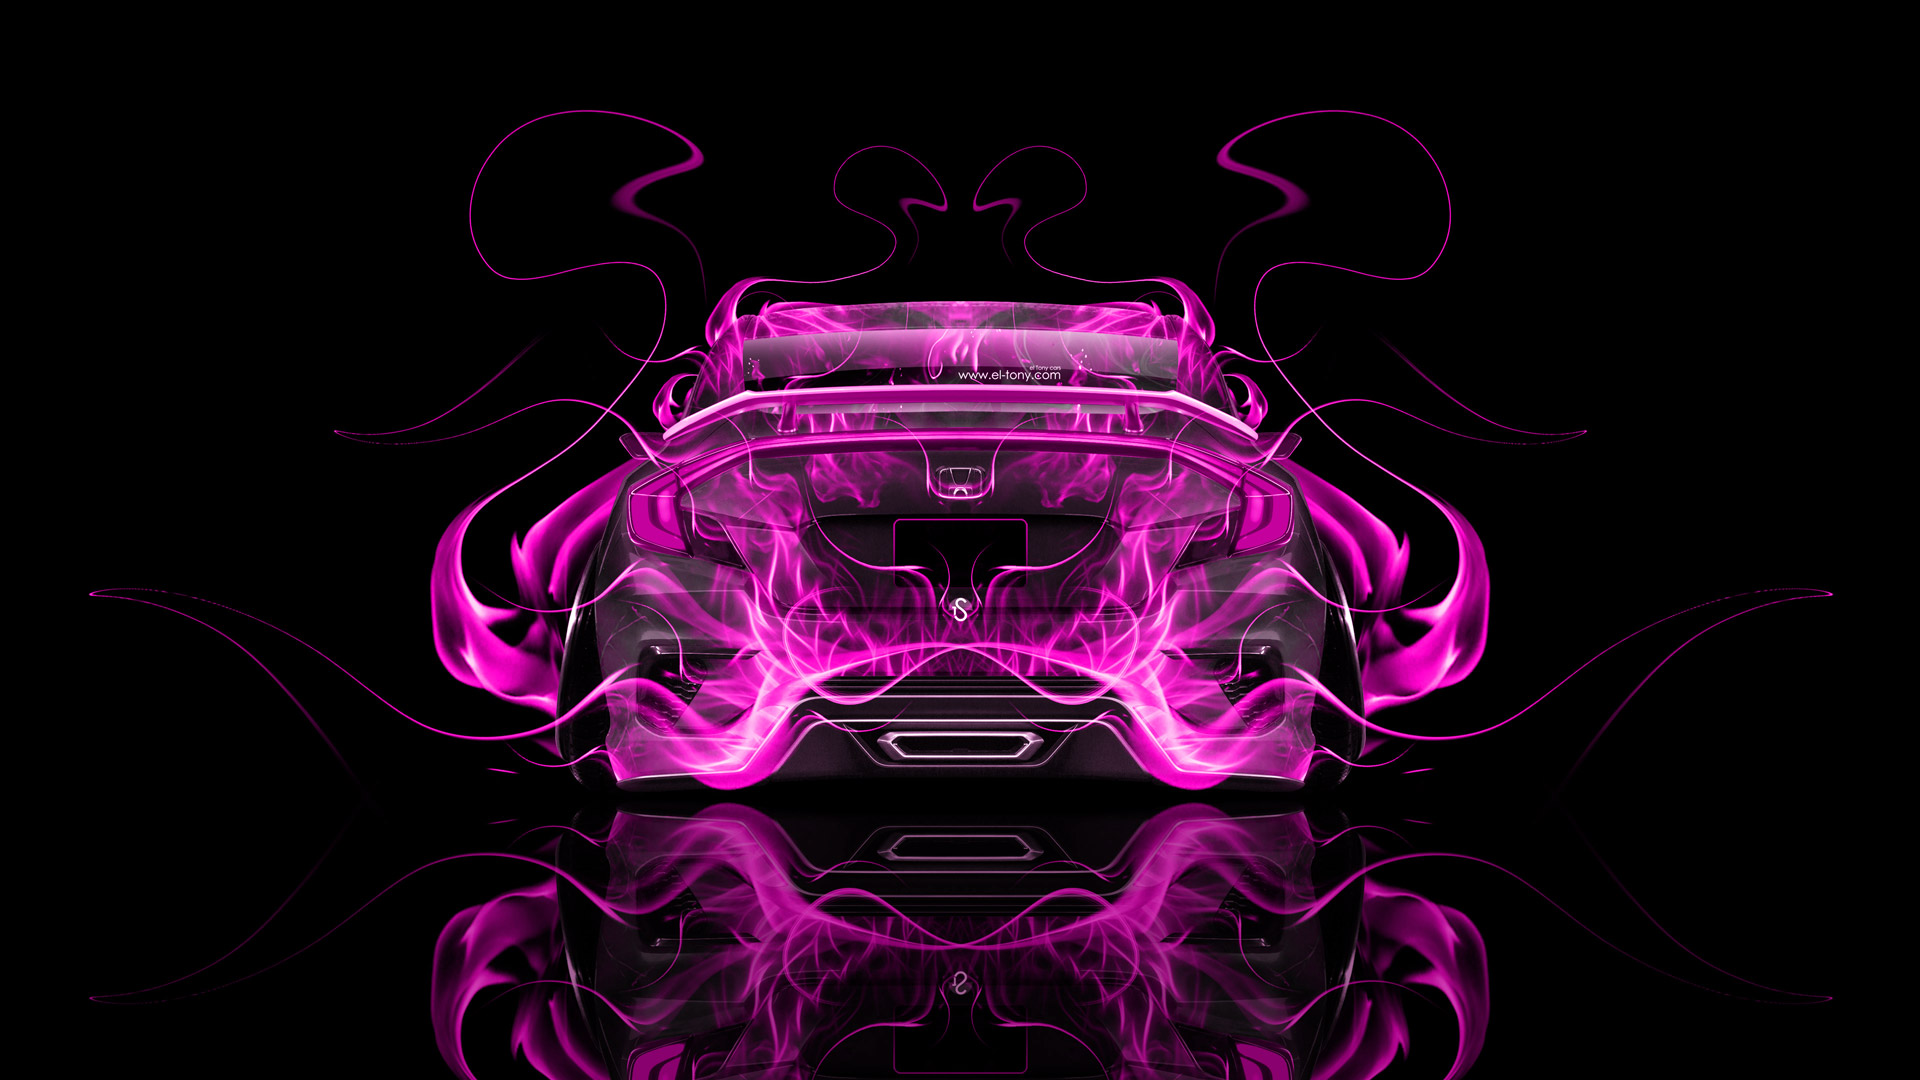 Honda-Civic-JDM-Back-Fire-Abstract-Car-Pink-Black-Colors-HD-design-by-Tony-Kokhan-ww-wallpaper-wpc5805968